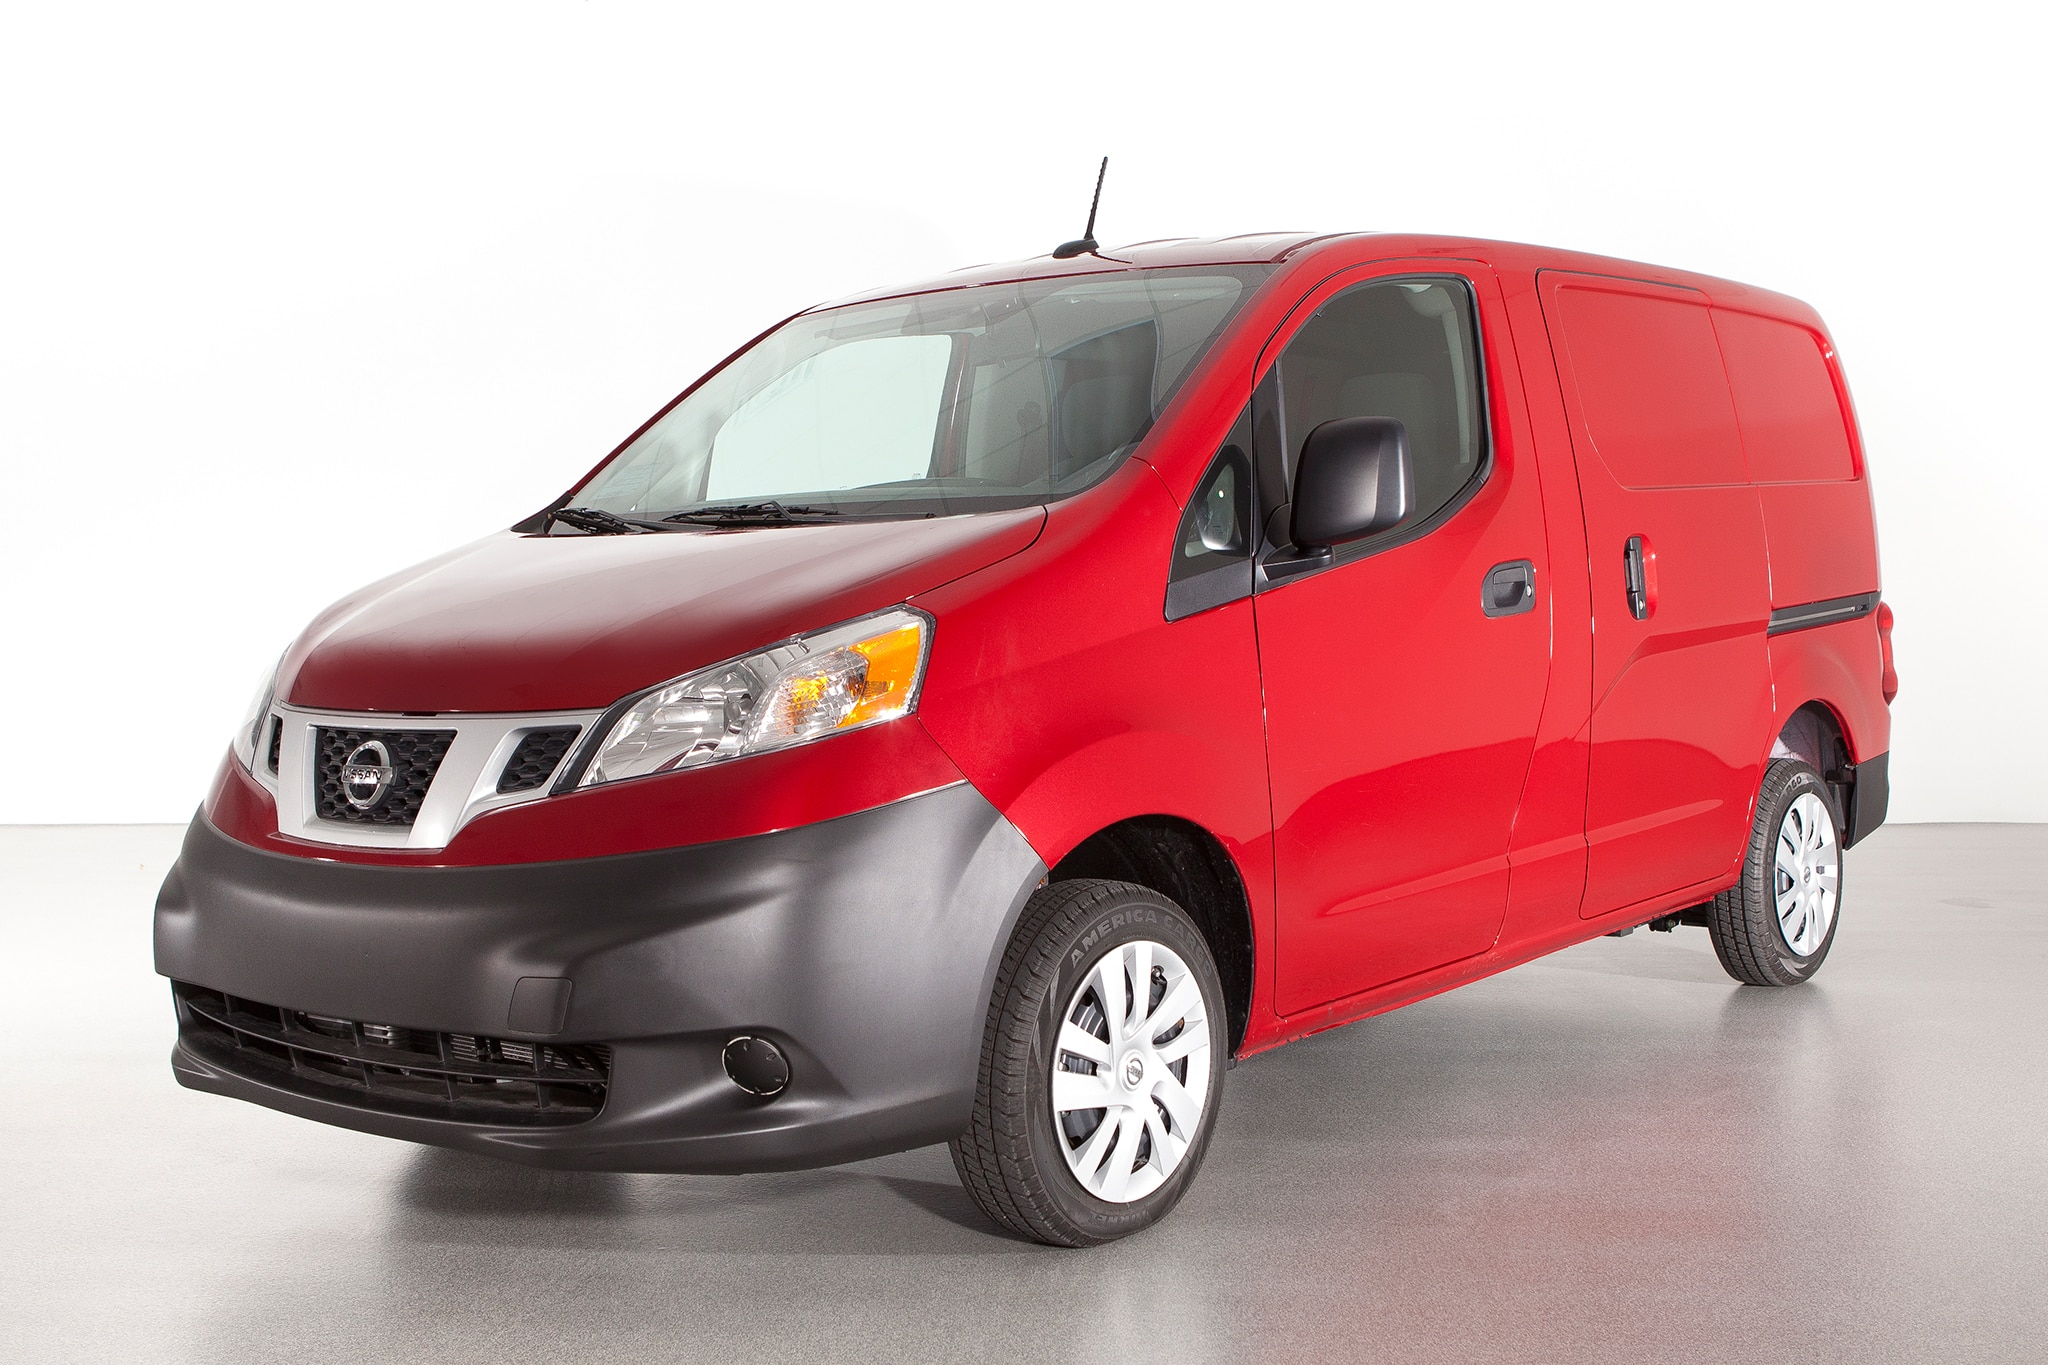 2014 Nissan NV200 Three Quarters View